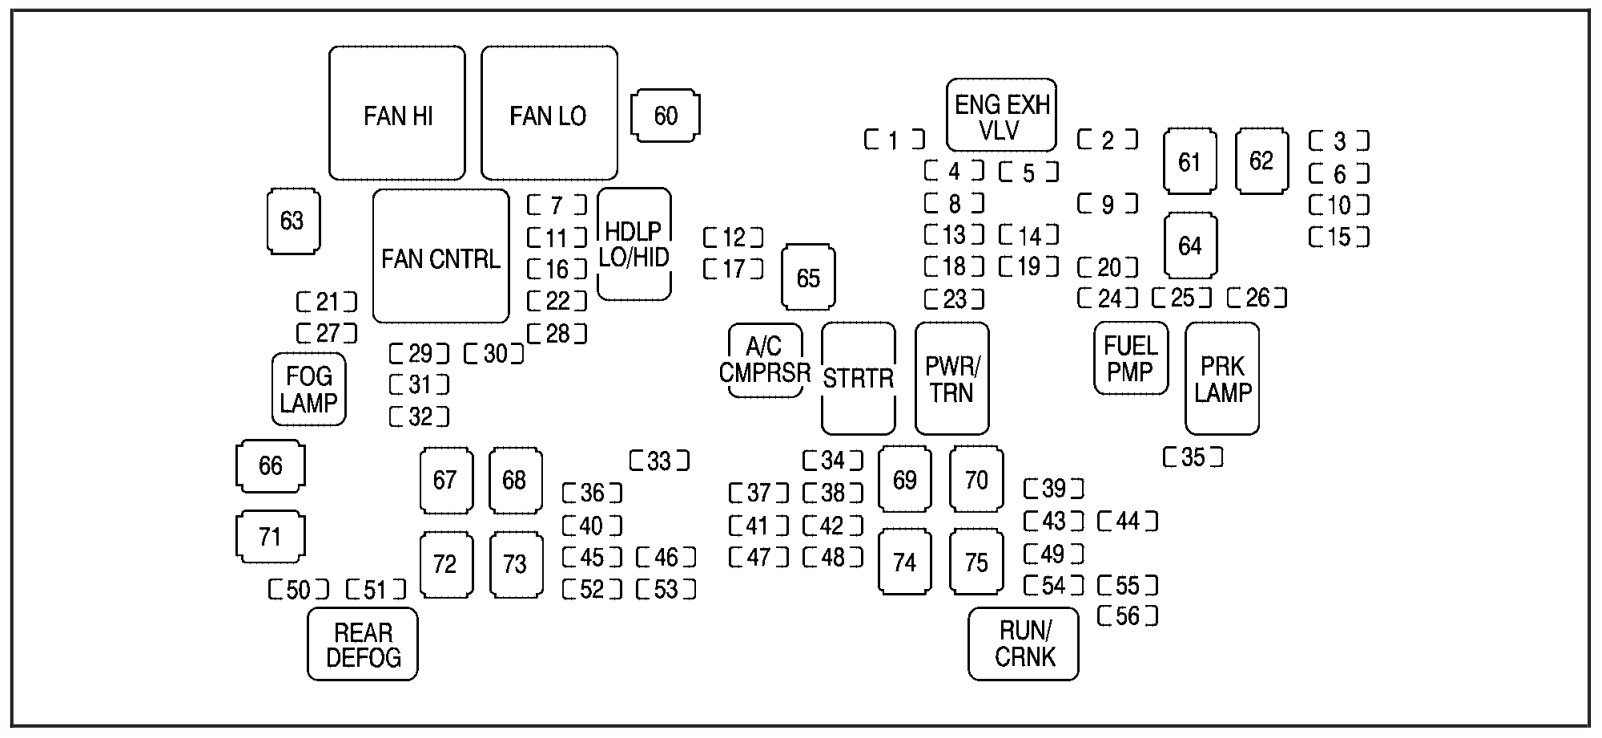 hight resolution of 2007 silverado fuse box wiring diagram week 2007 chevy tahoe fuse box diagram 2007 chevy fuse box location